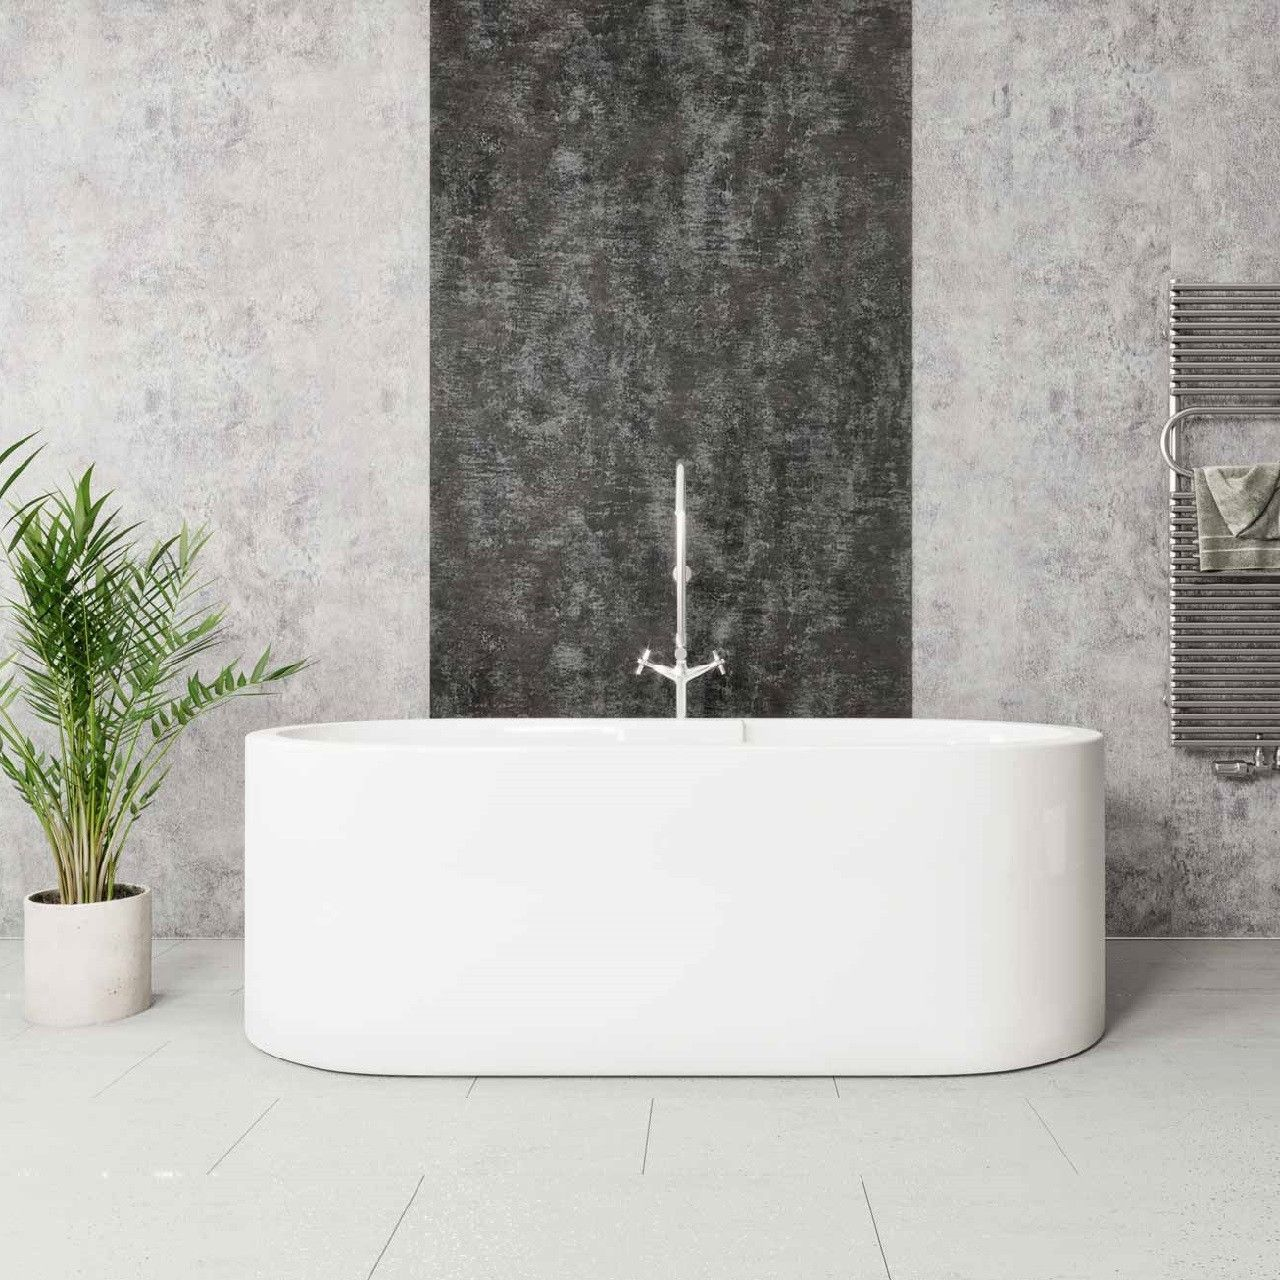 Looking For An Alternative To Bathroom Tiles Why Not Opt For Waterproof Wall Panels These Tile Bathroom Waterproof Wall Panels Alternative To Bathroom Tiles